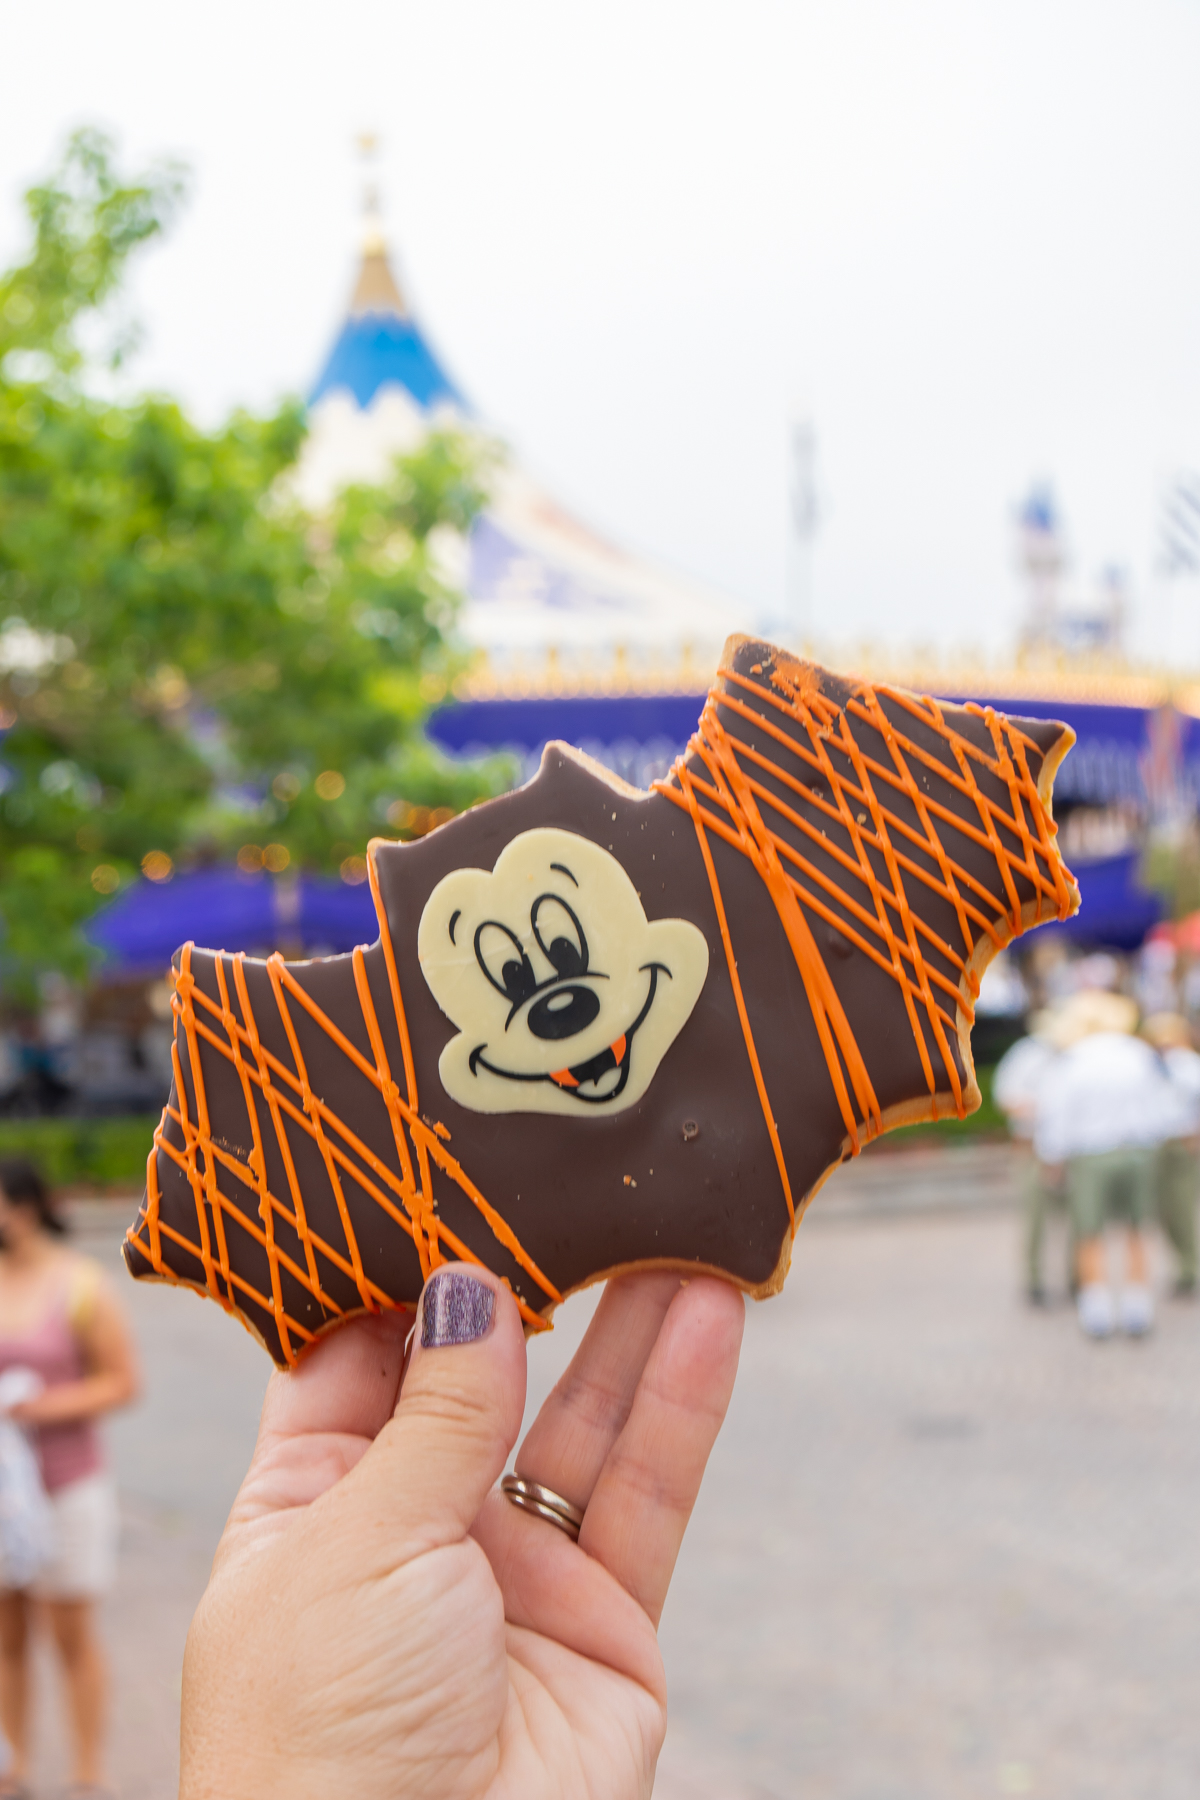 Mickey bat cookie being held by a hand